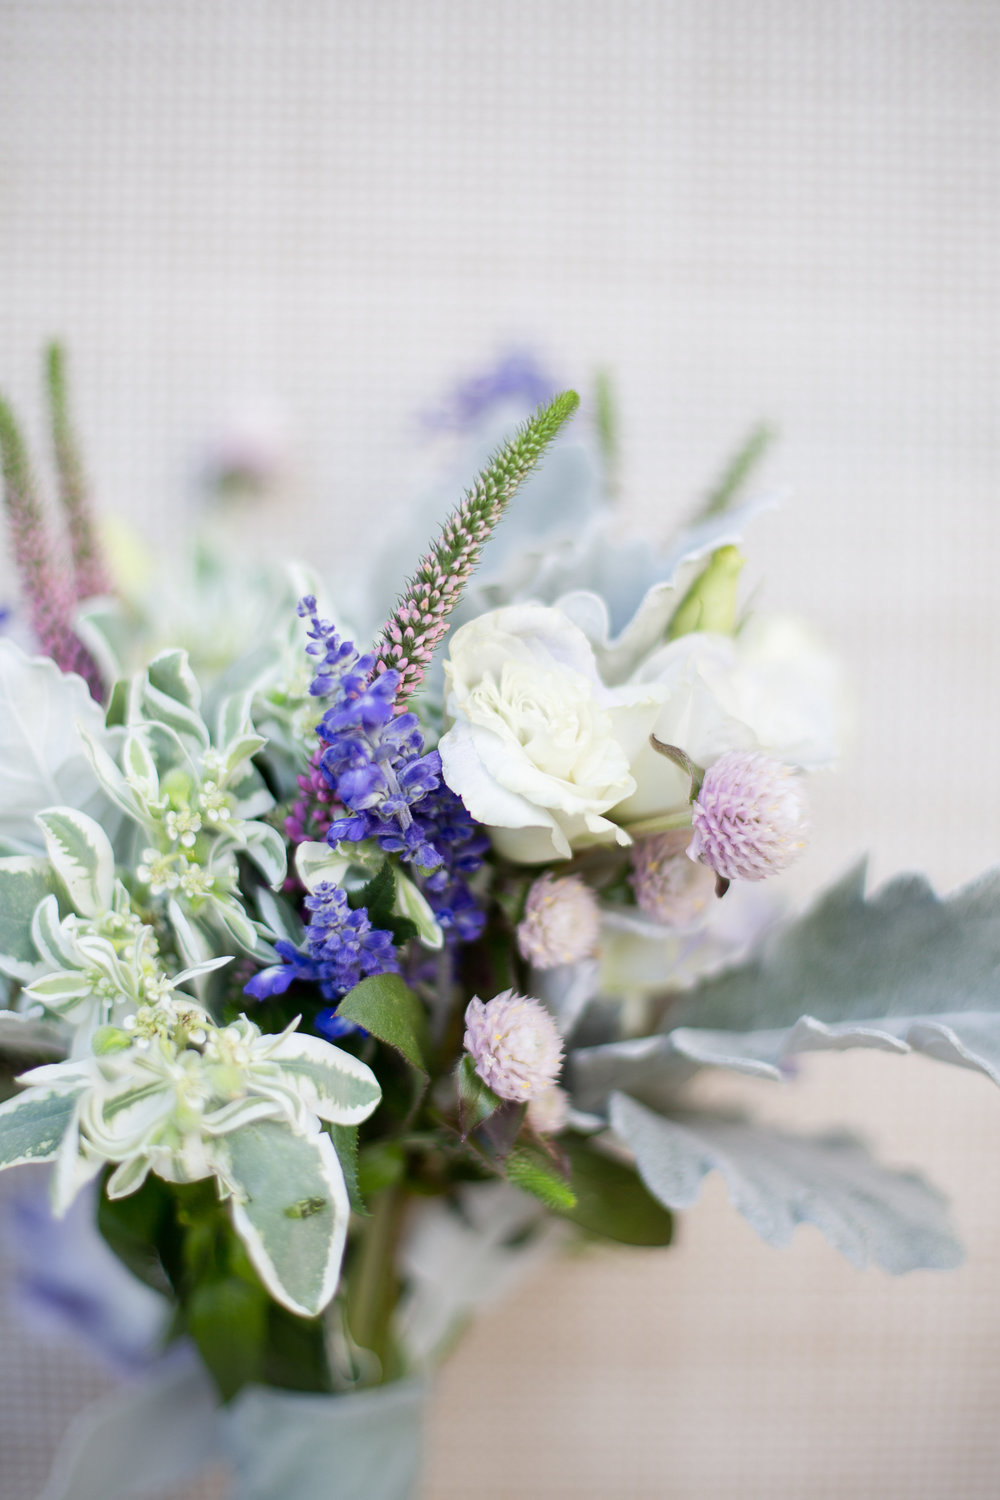 Dusty miller bridesmaids bouquet